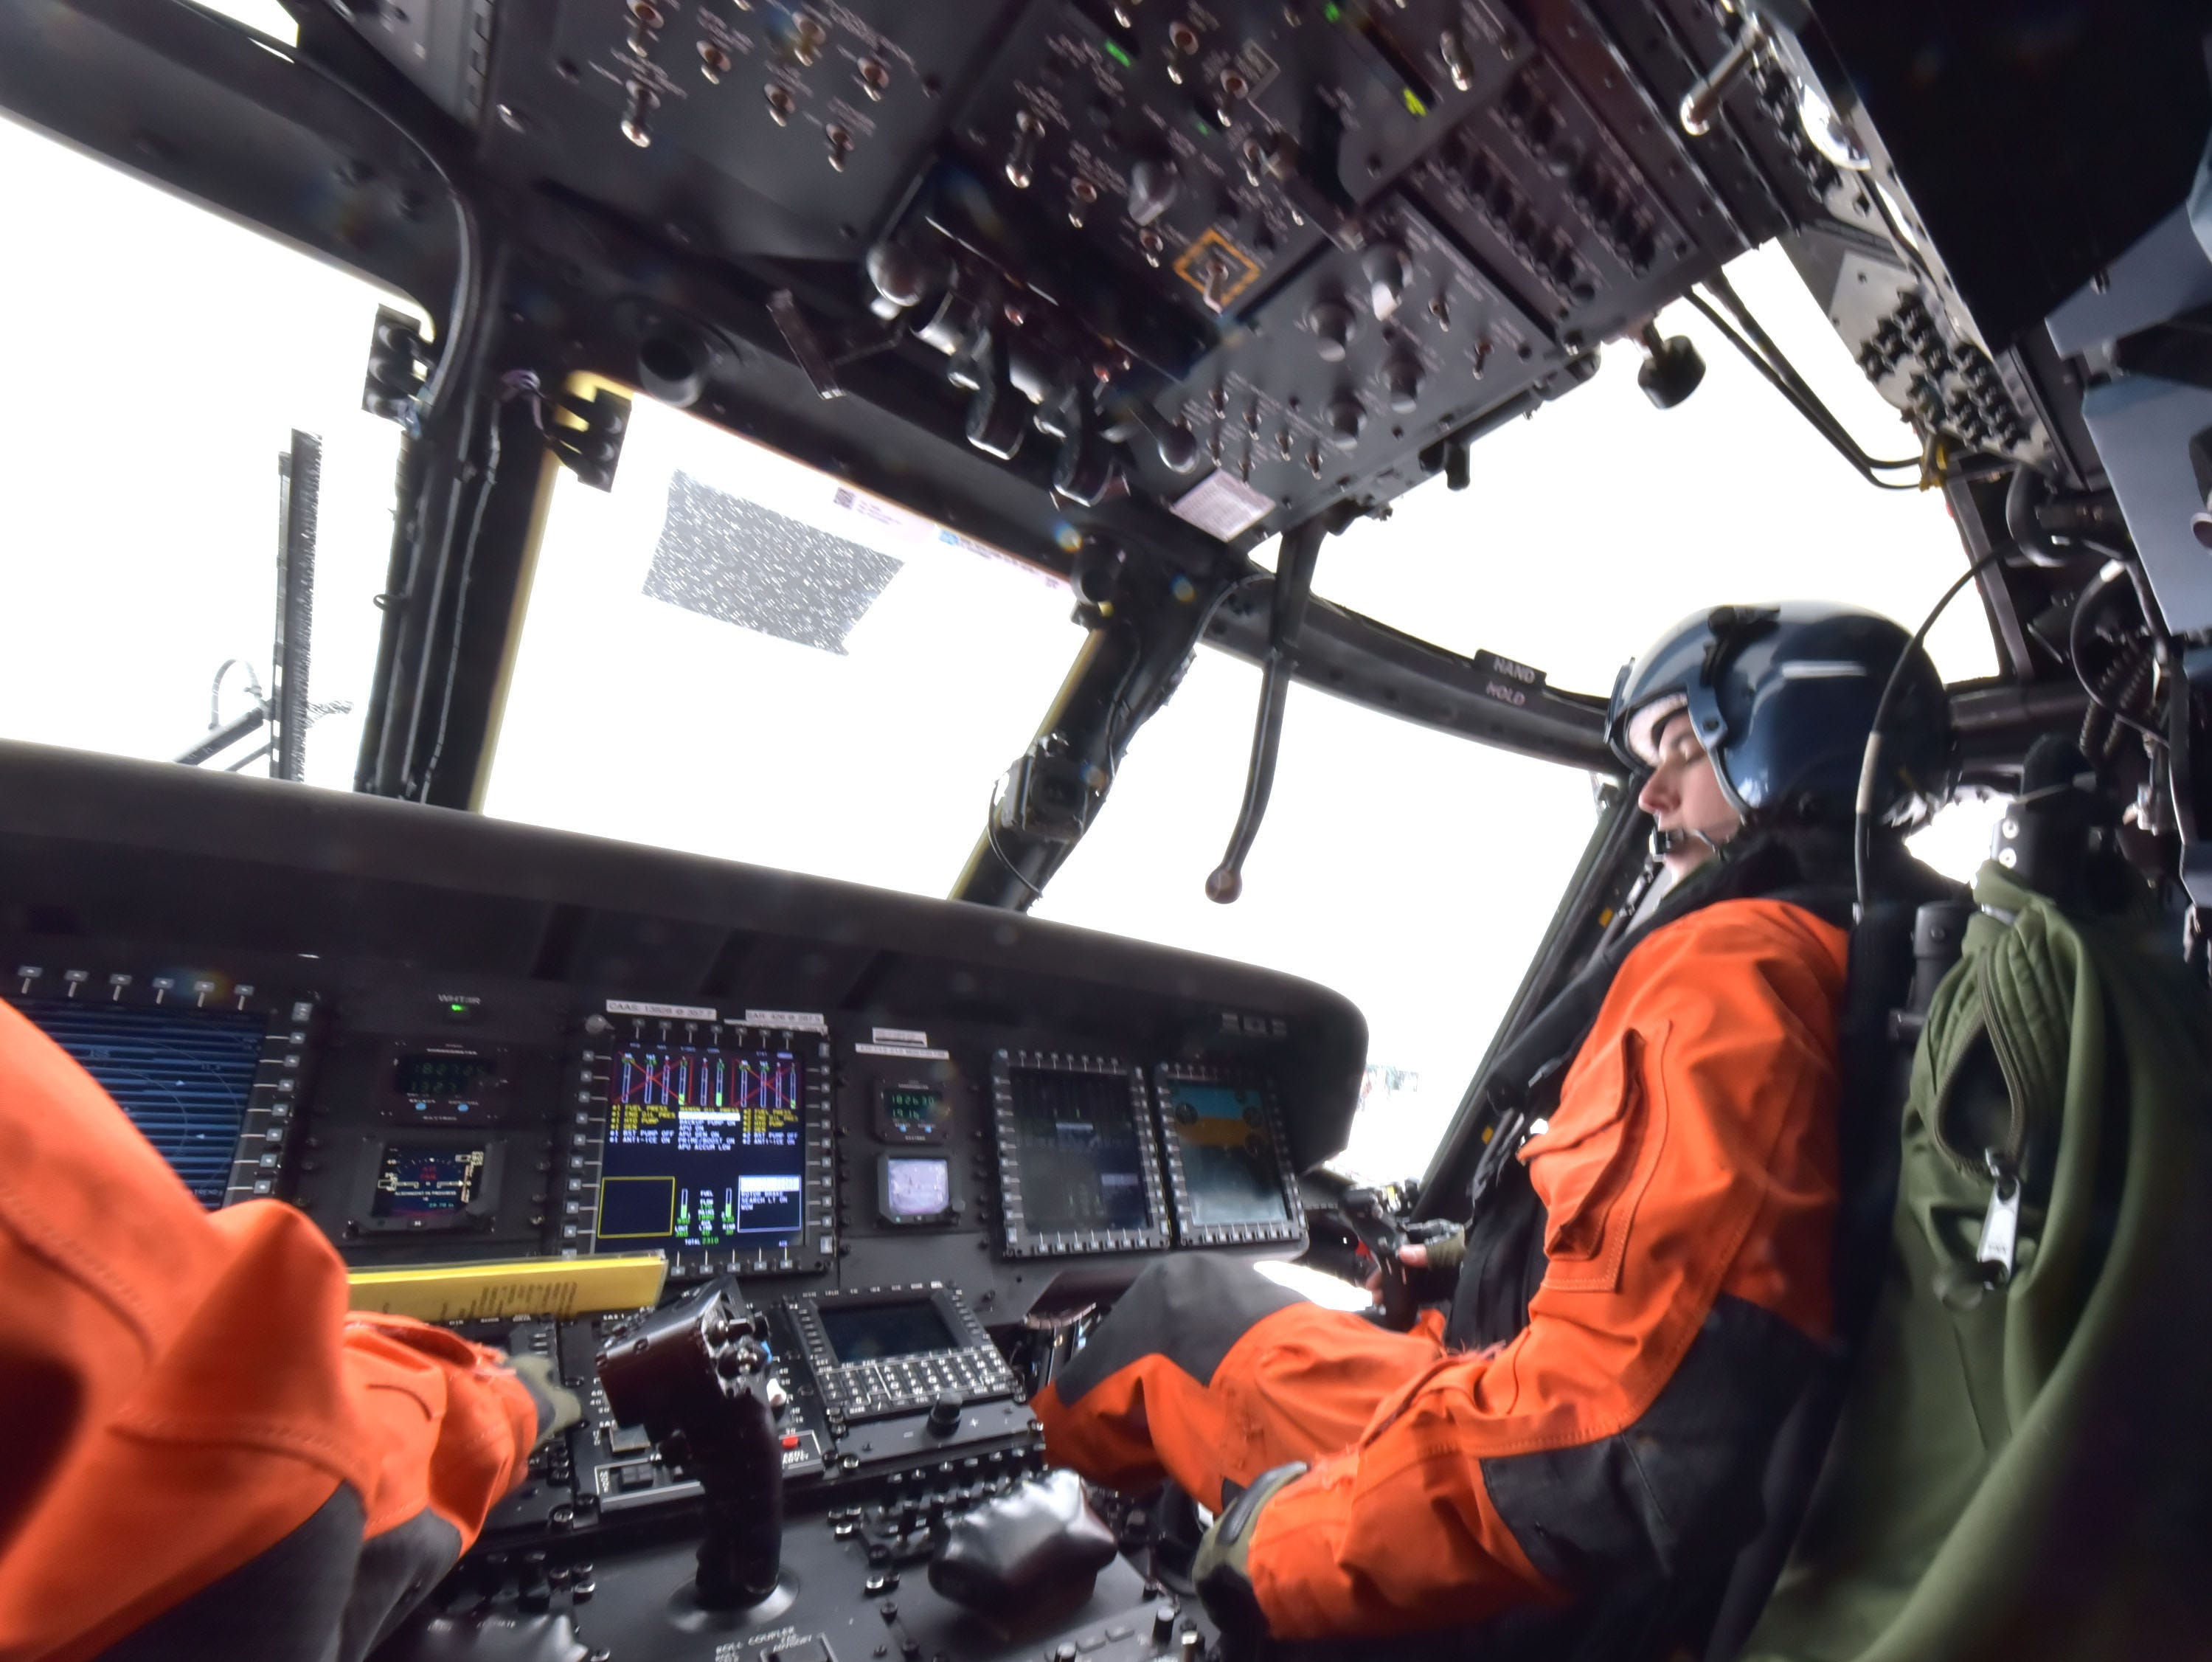 U.S. Coast Guard Lt. Andrew Chevalier flies a MH-60T Jayhawk helicopter Thursday, Feb. 14, 2019 while on Aids to Navigation flight. Two maintenance specialists were lowered to the deck of the White Shoal Lighthouse in upper Lake Michigan to perform maintenance and repair work on the light.